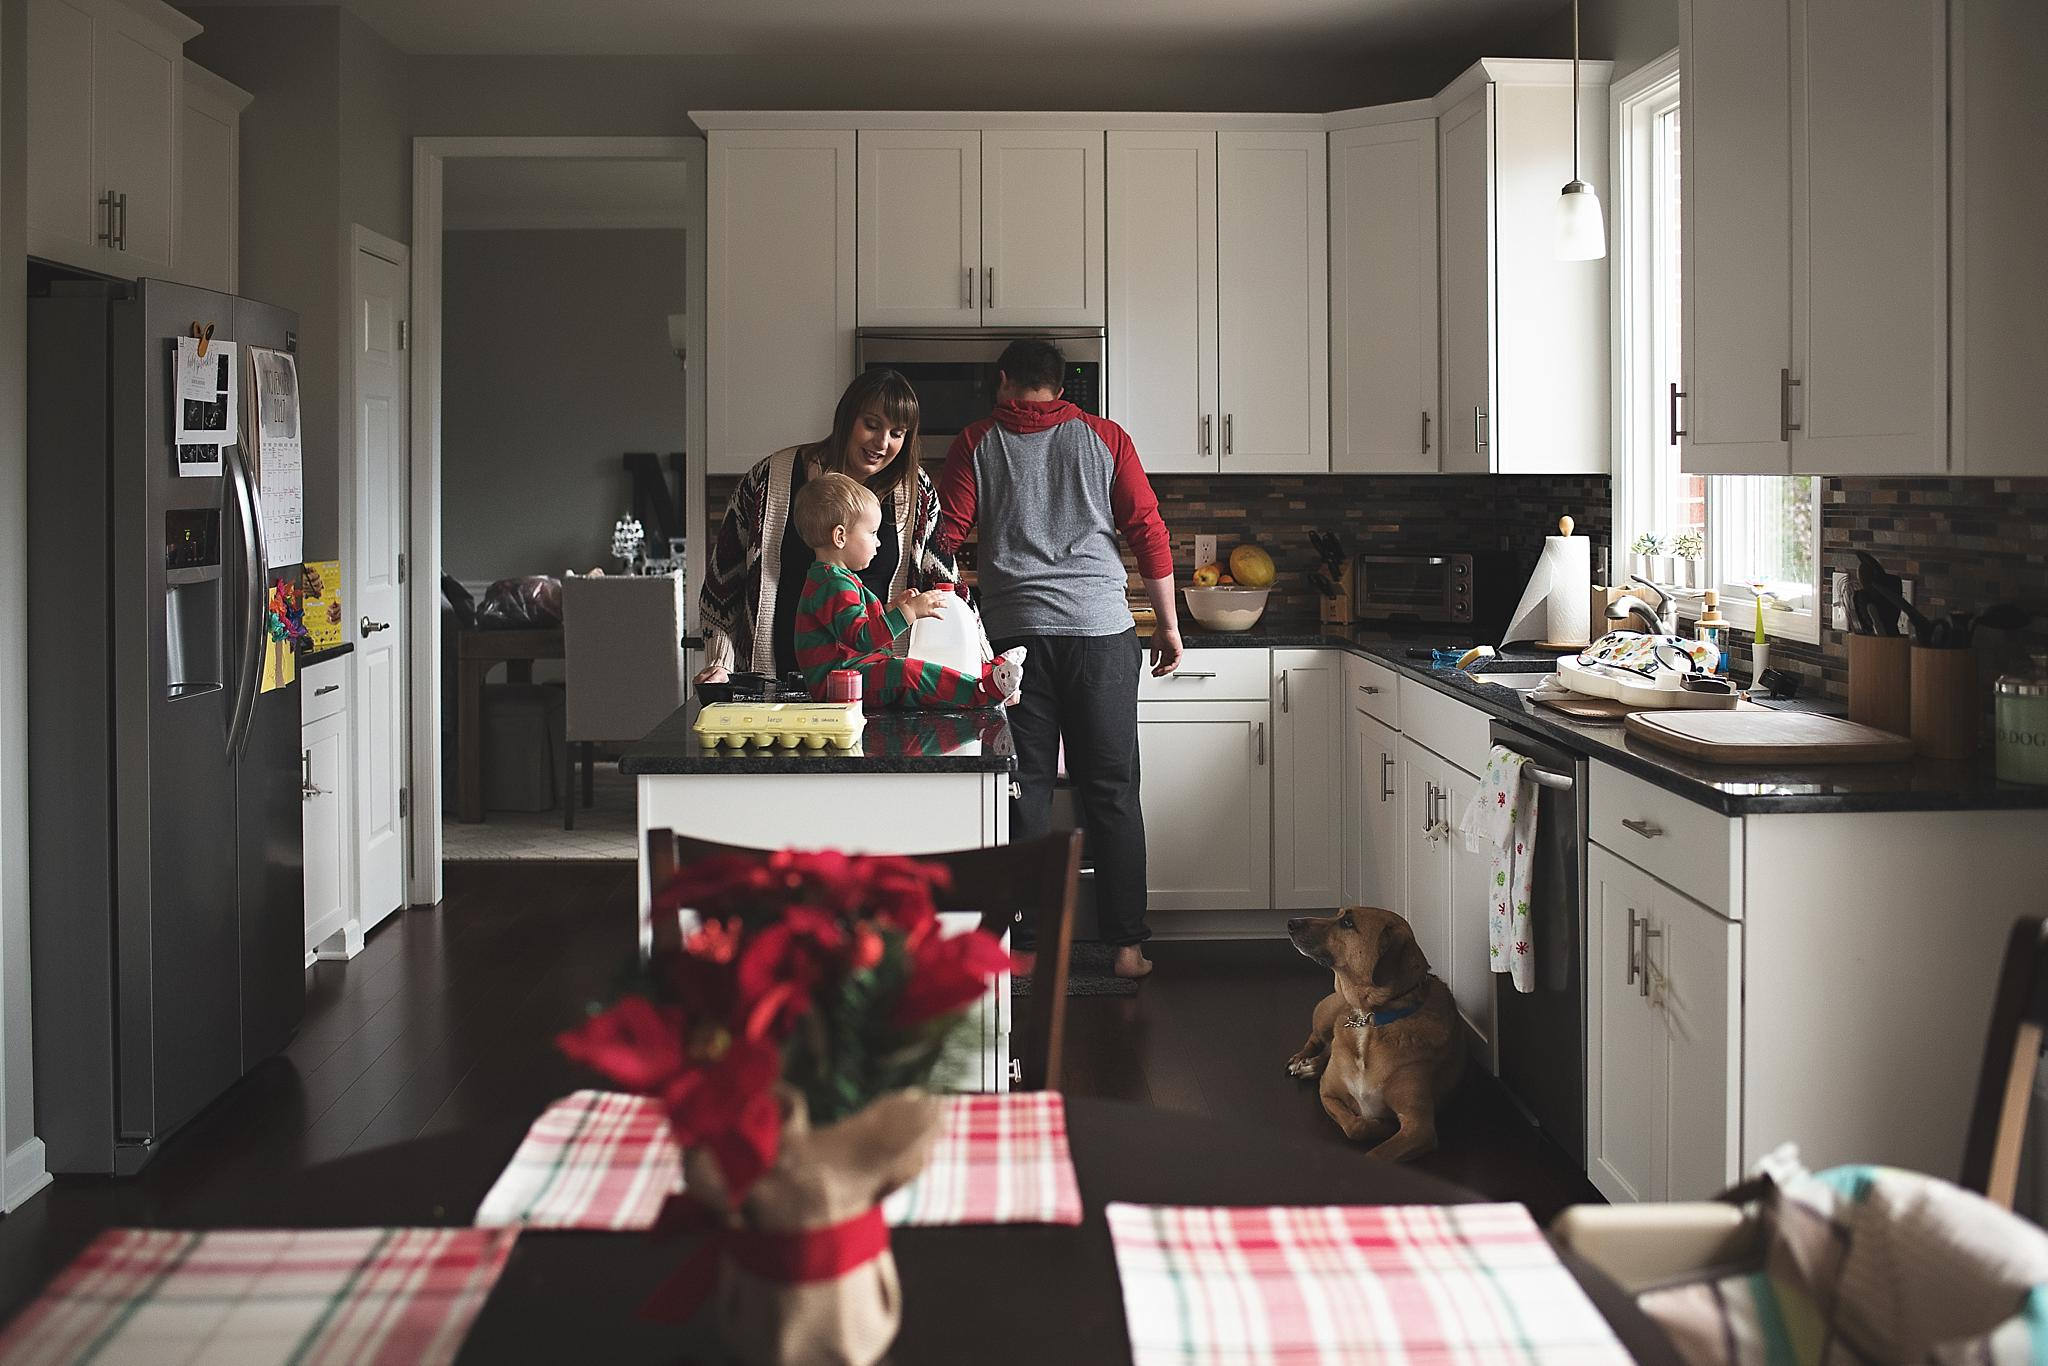 at home lifestyle photography michigan - family in kitchen